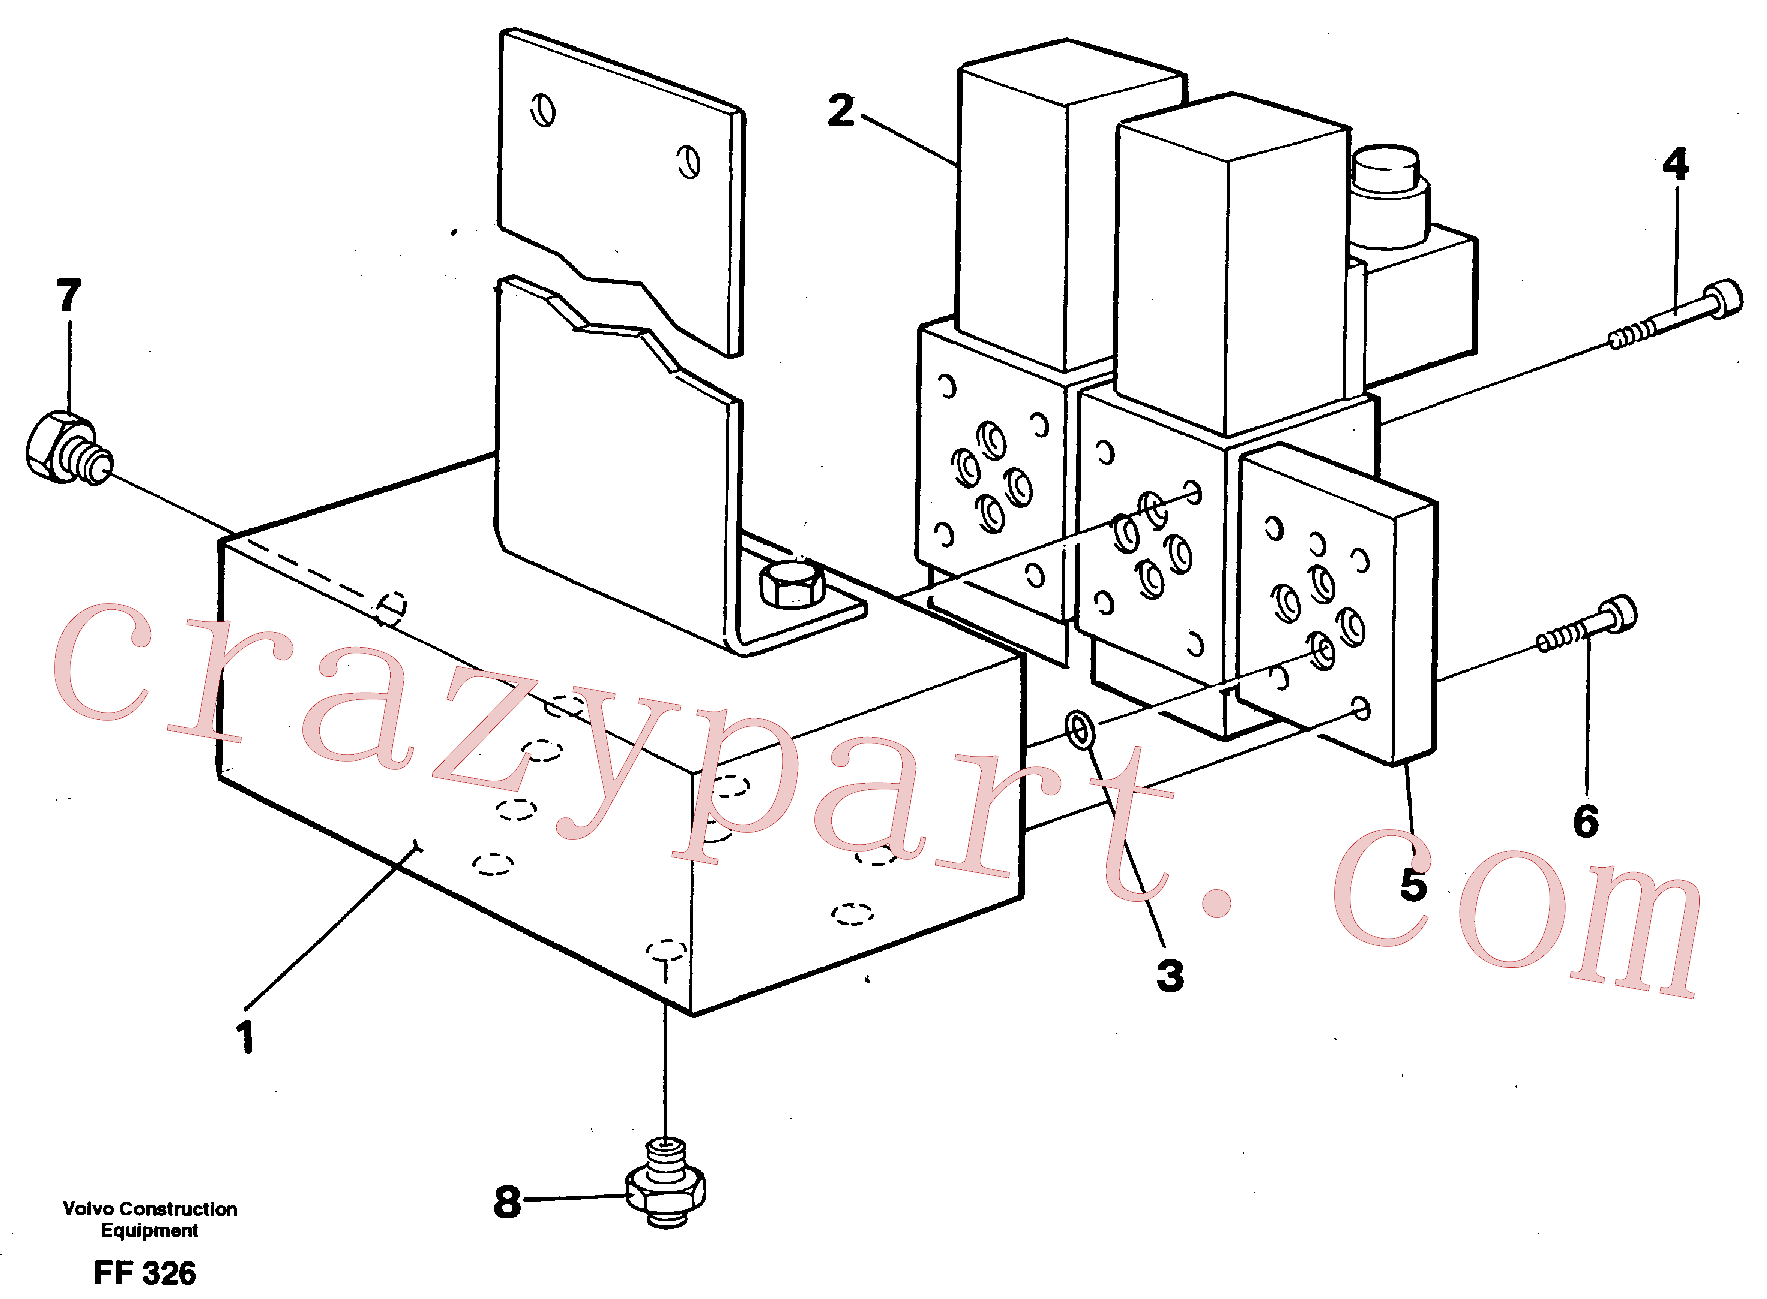 VOE14265156 for Volvo Solenoid valves(FF326 assembly)